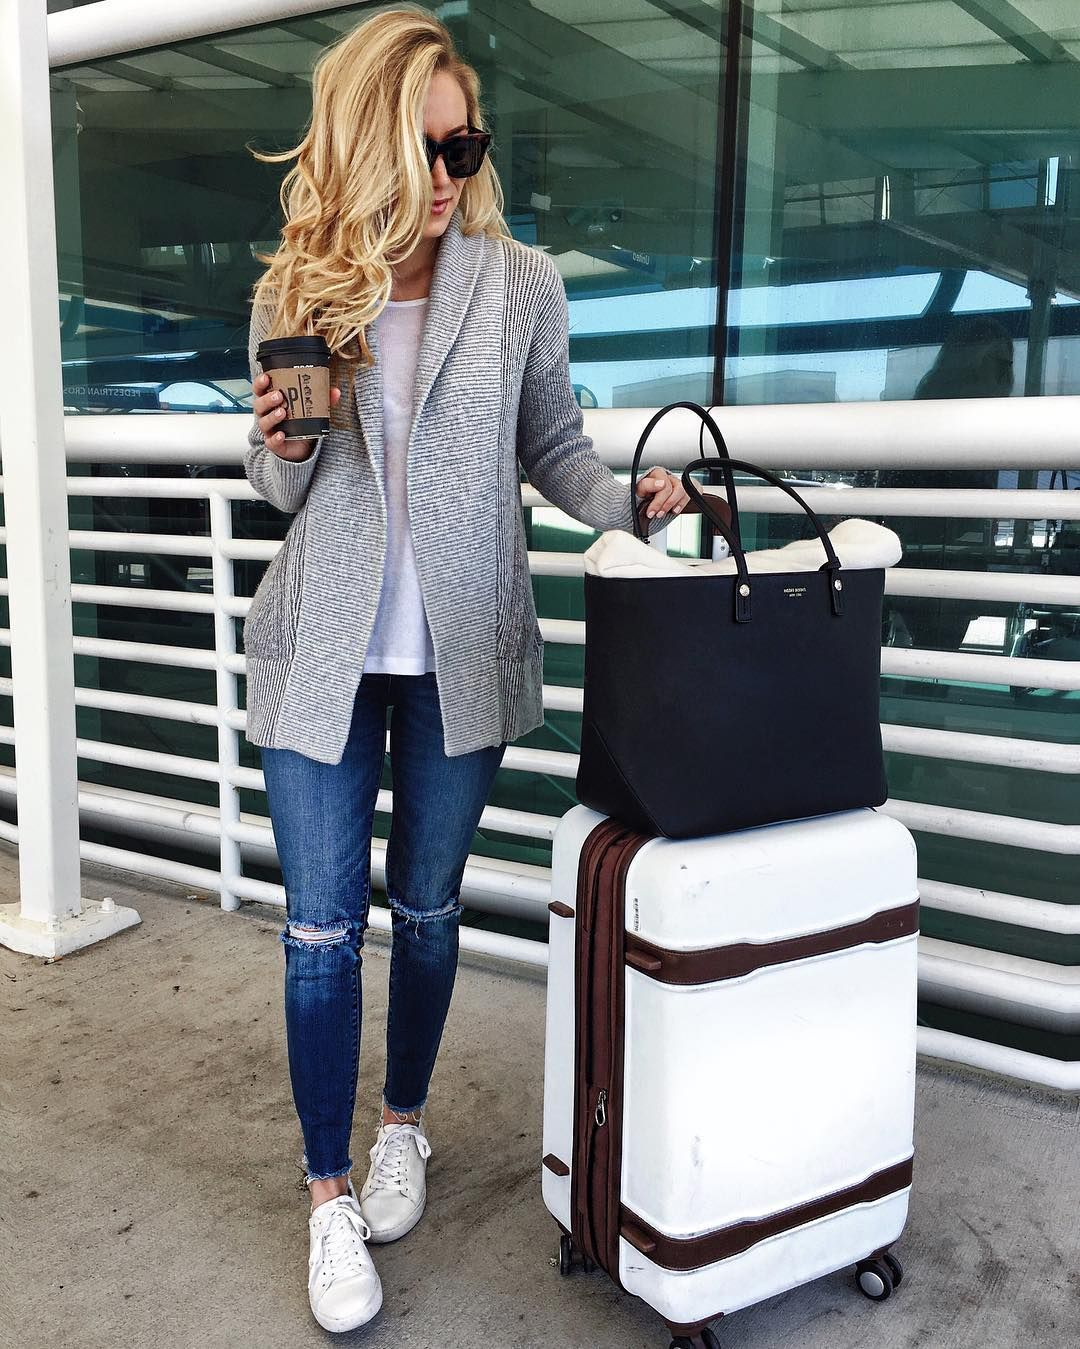 37b6f94b9d507a comfy travel style | grey cardigan with white tee and distressed denim